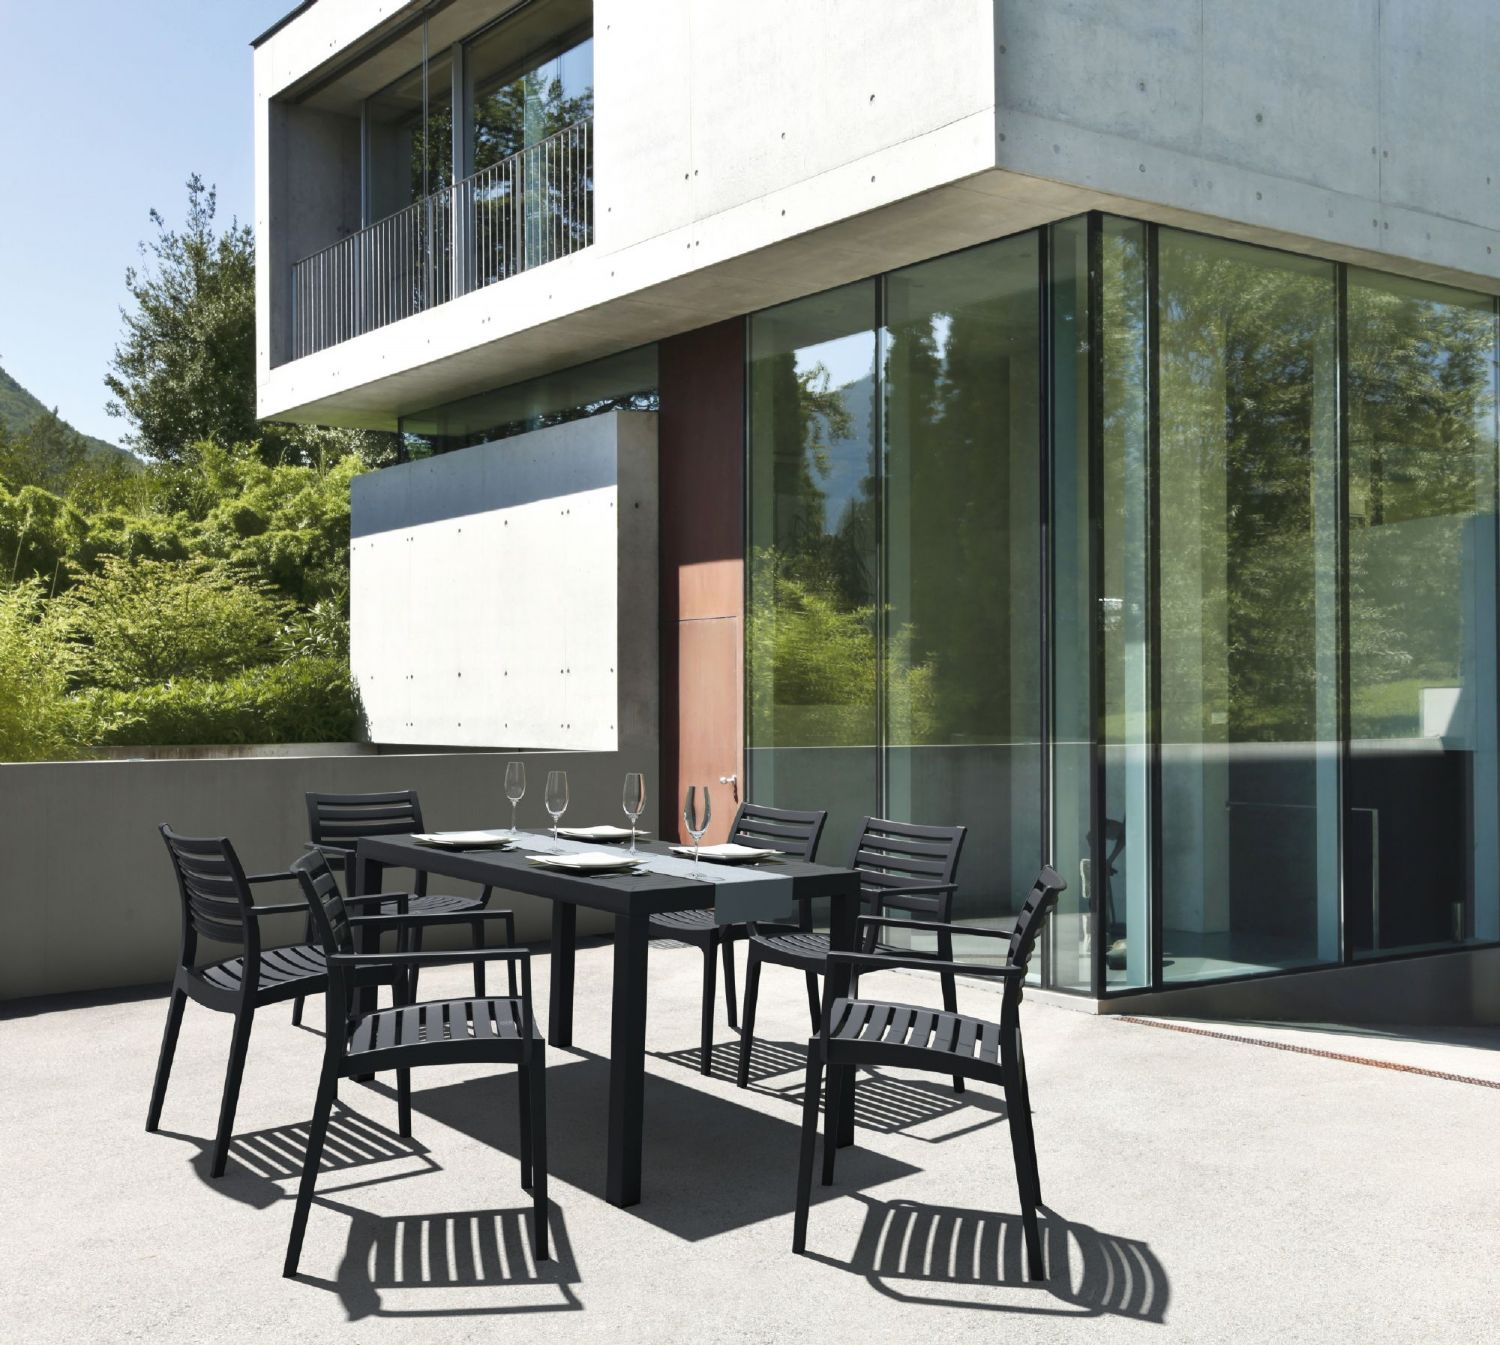 Ares Rectangle Outdoor Table 55 inch Dark Gray ISP186-DGR - 1